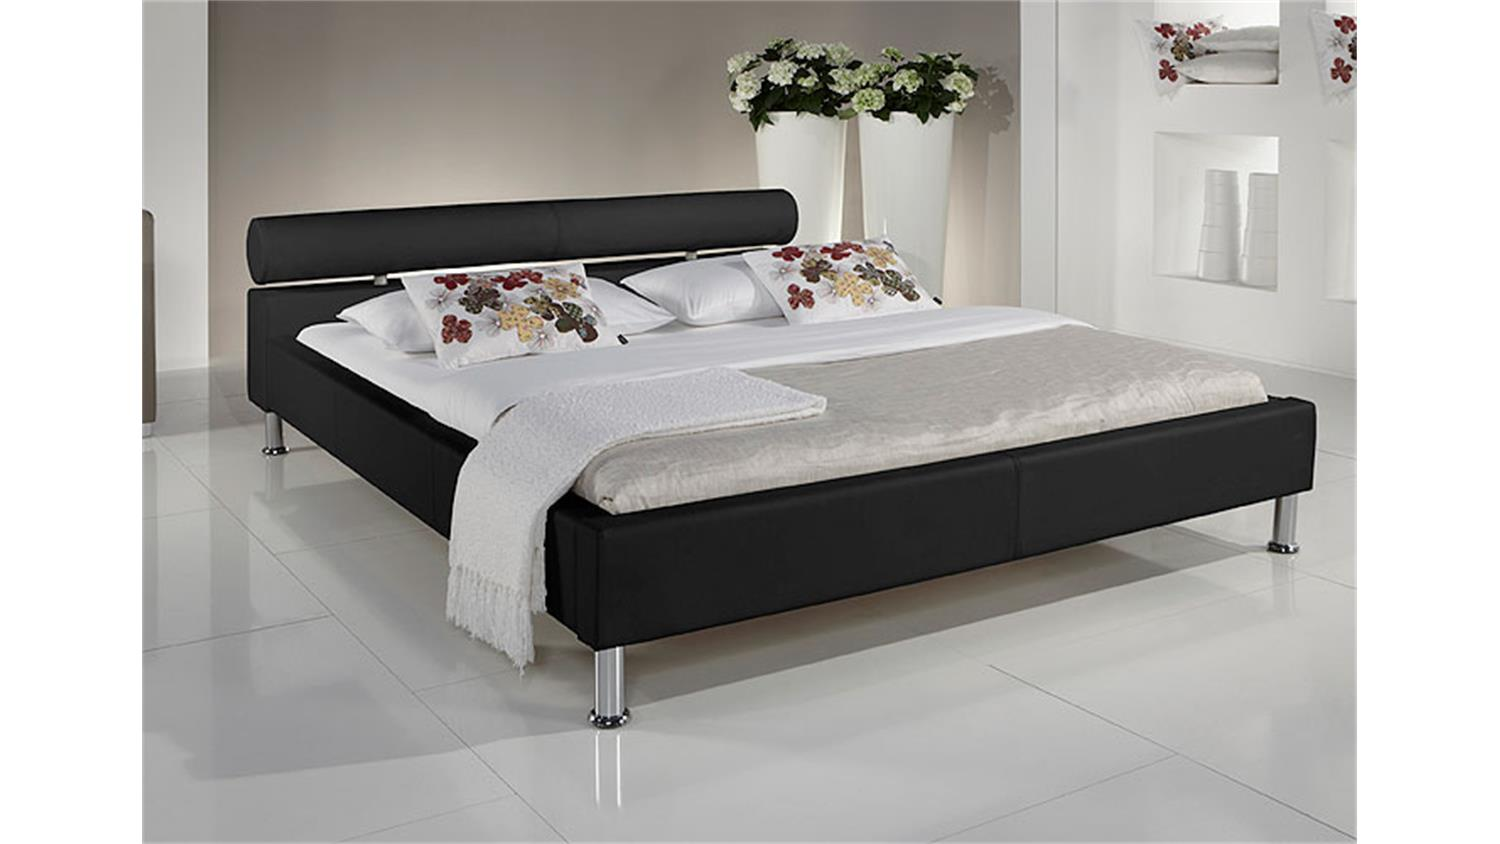 polsterbett manelli designer bett in schwarz 180x200 cm. Black Bedroom Furniture Sets. Home Design Ideas